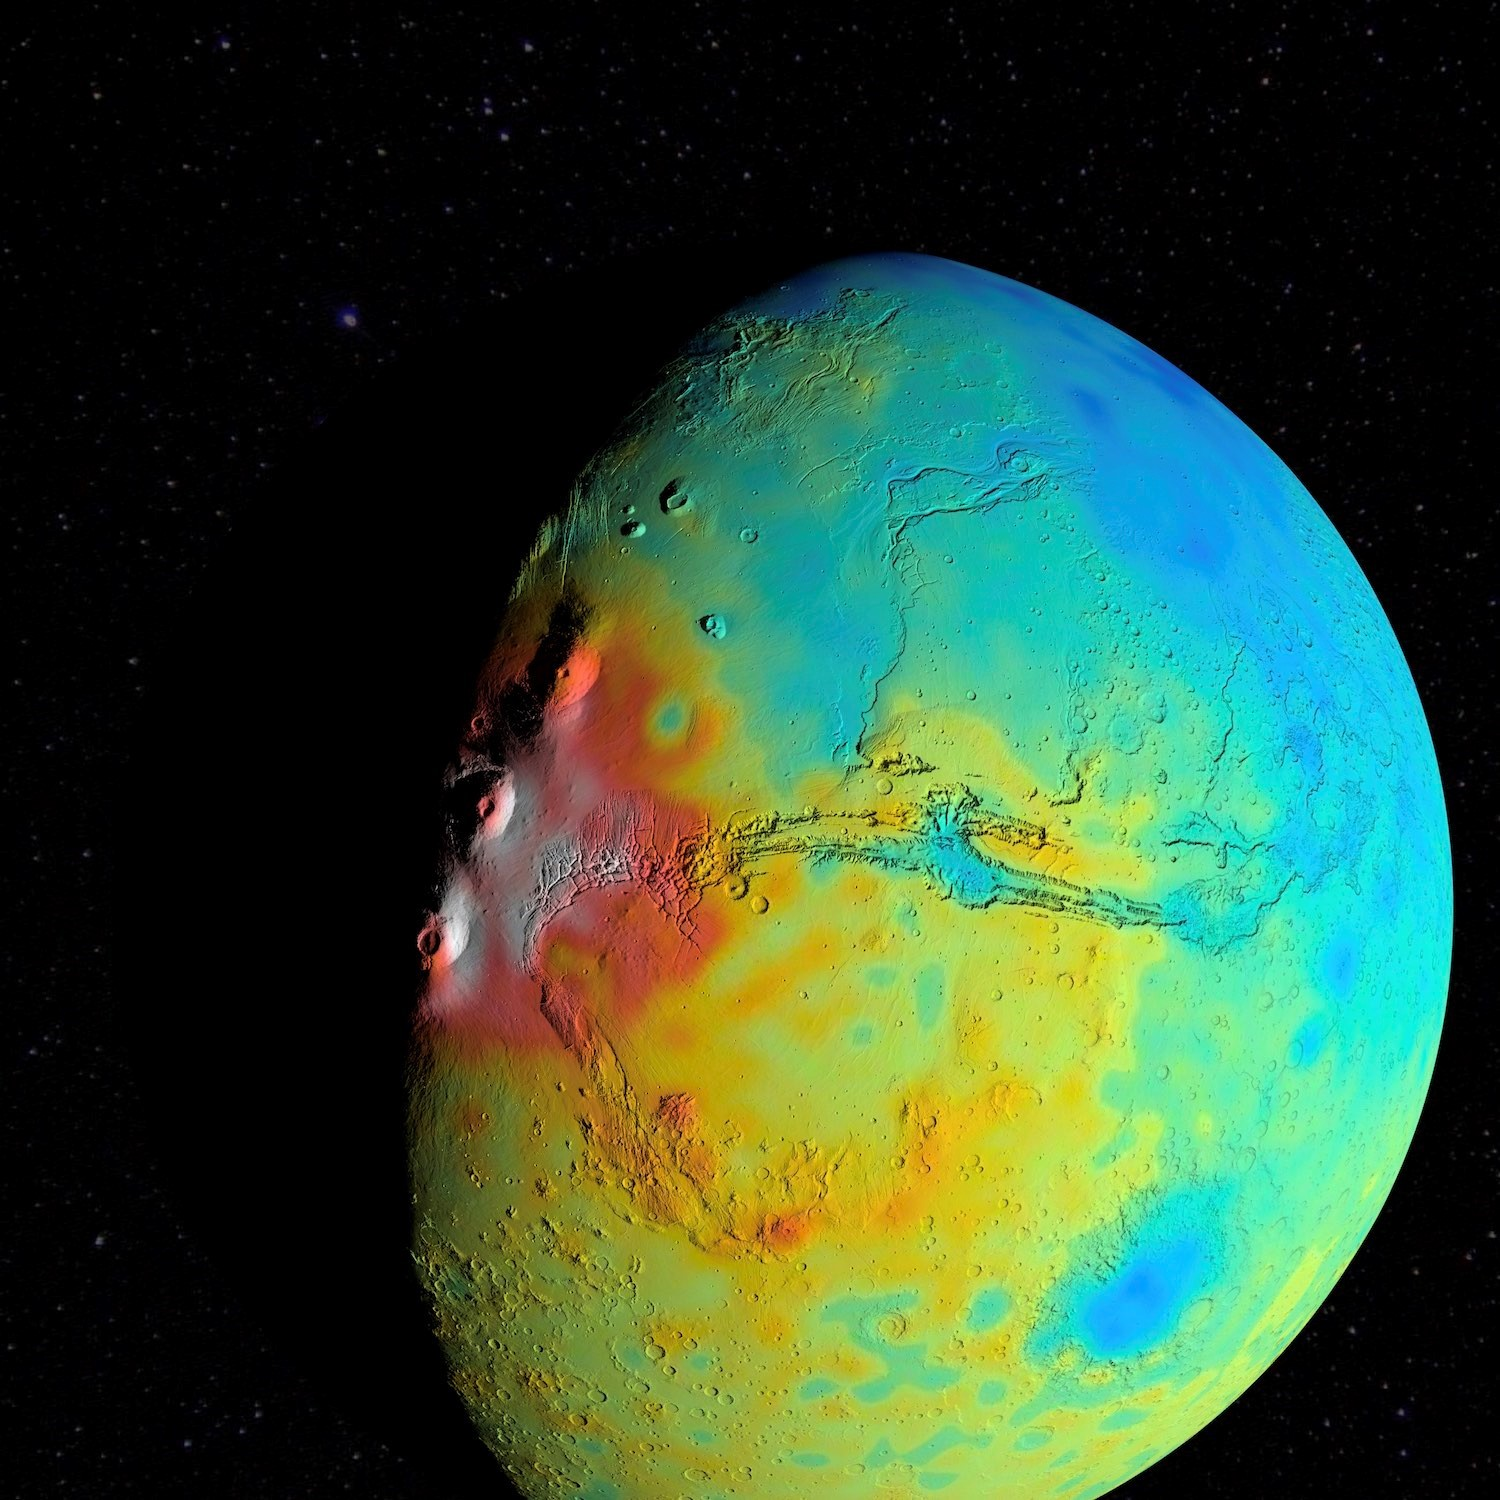 A new map of the thickness of Mars' crust shows less variation between thicker regions (red) and thinner regions (blue), compared to earlier mapping.